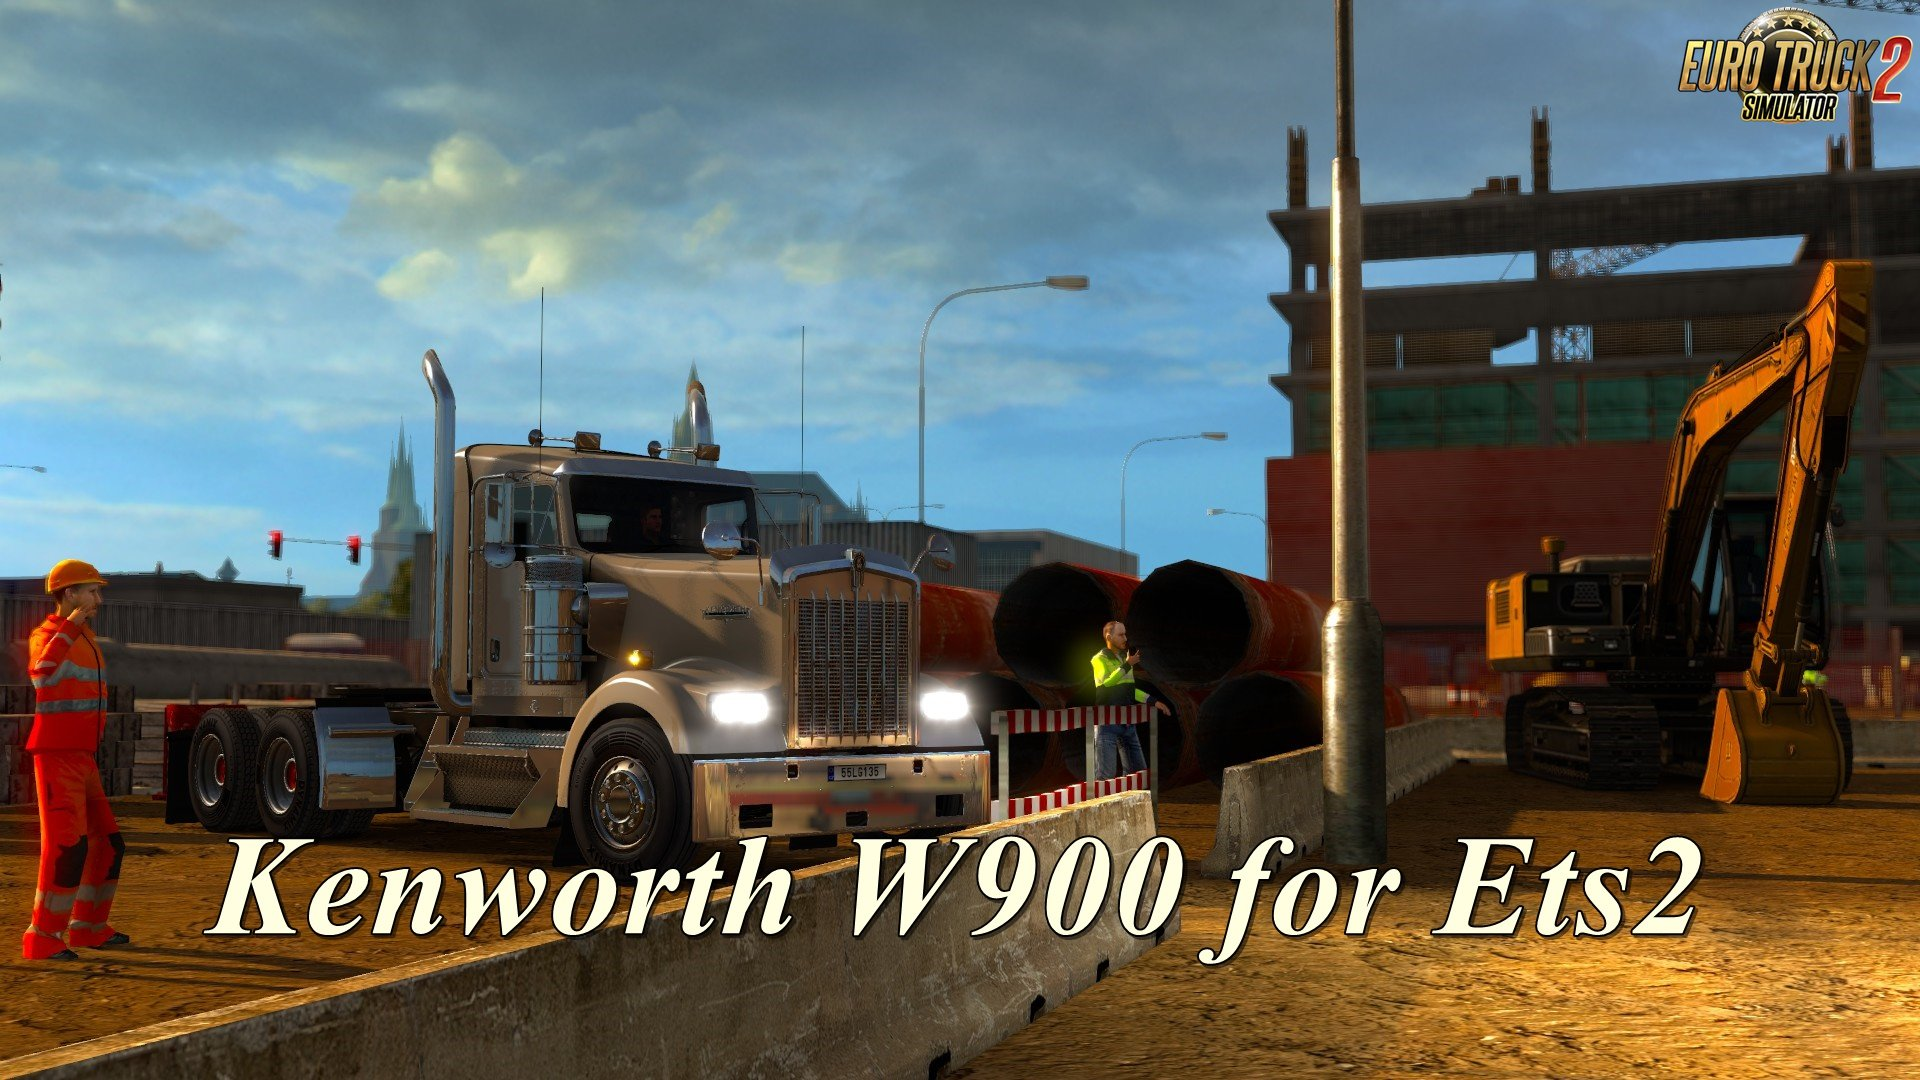 Kenworth W900 for Ets2